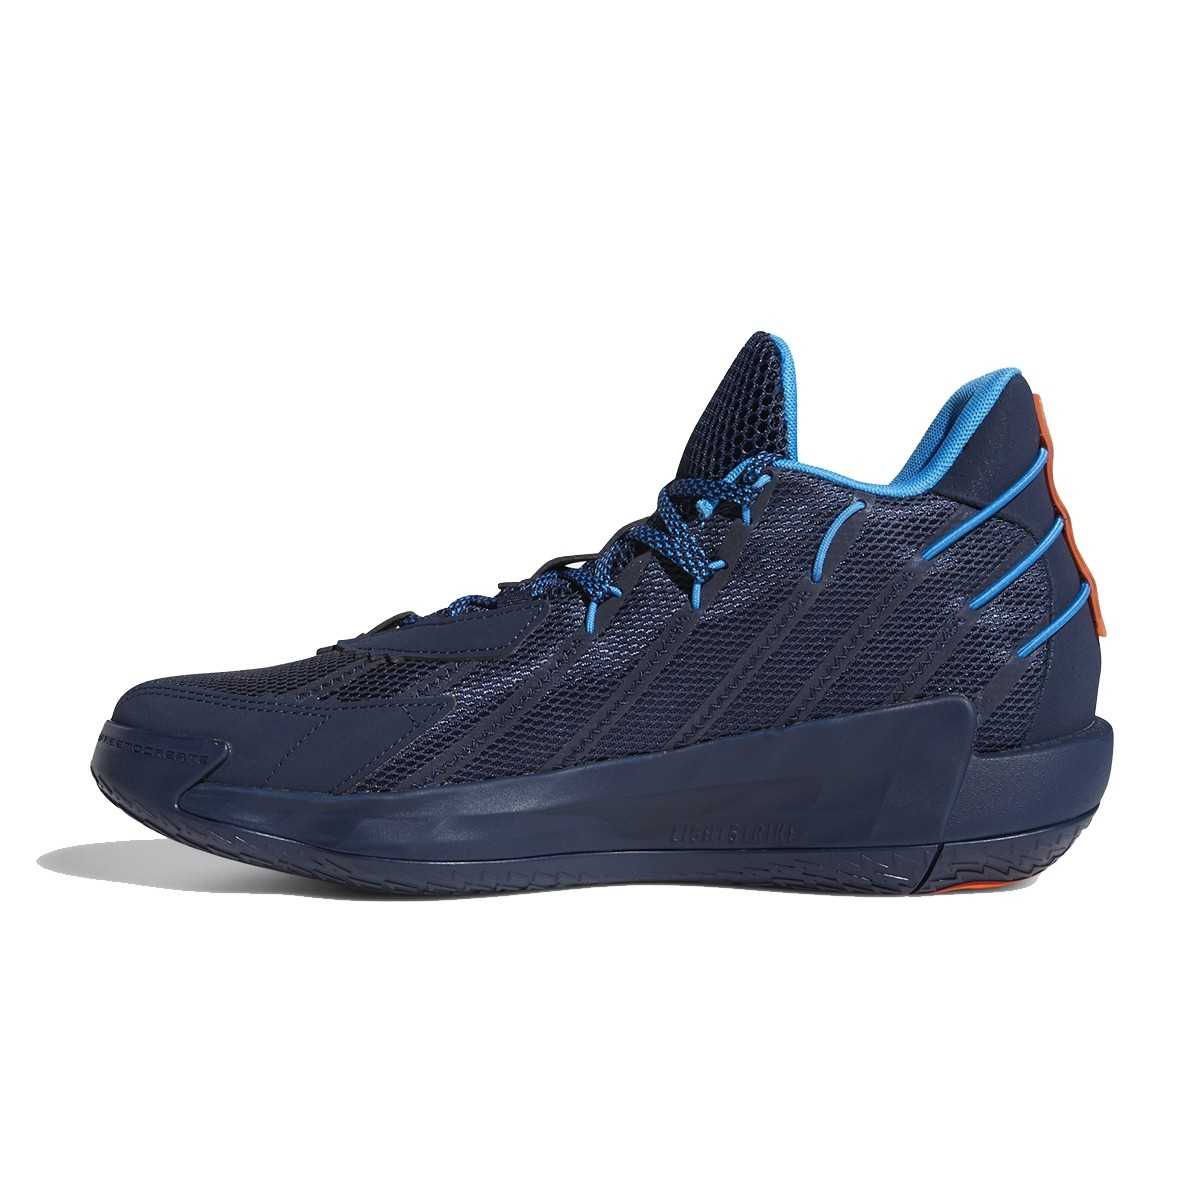 ADIDAS Dame 7 'Lights Out'-FZ1103